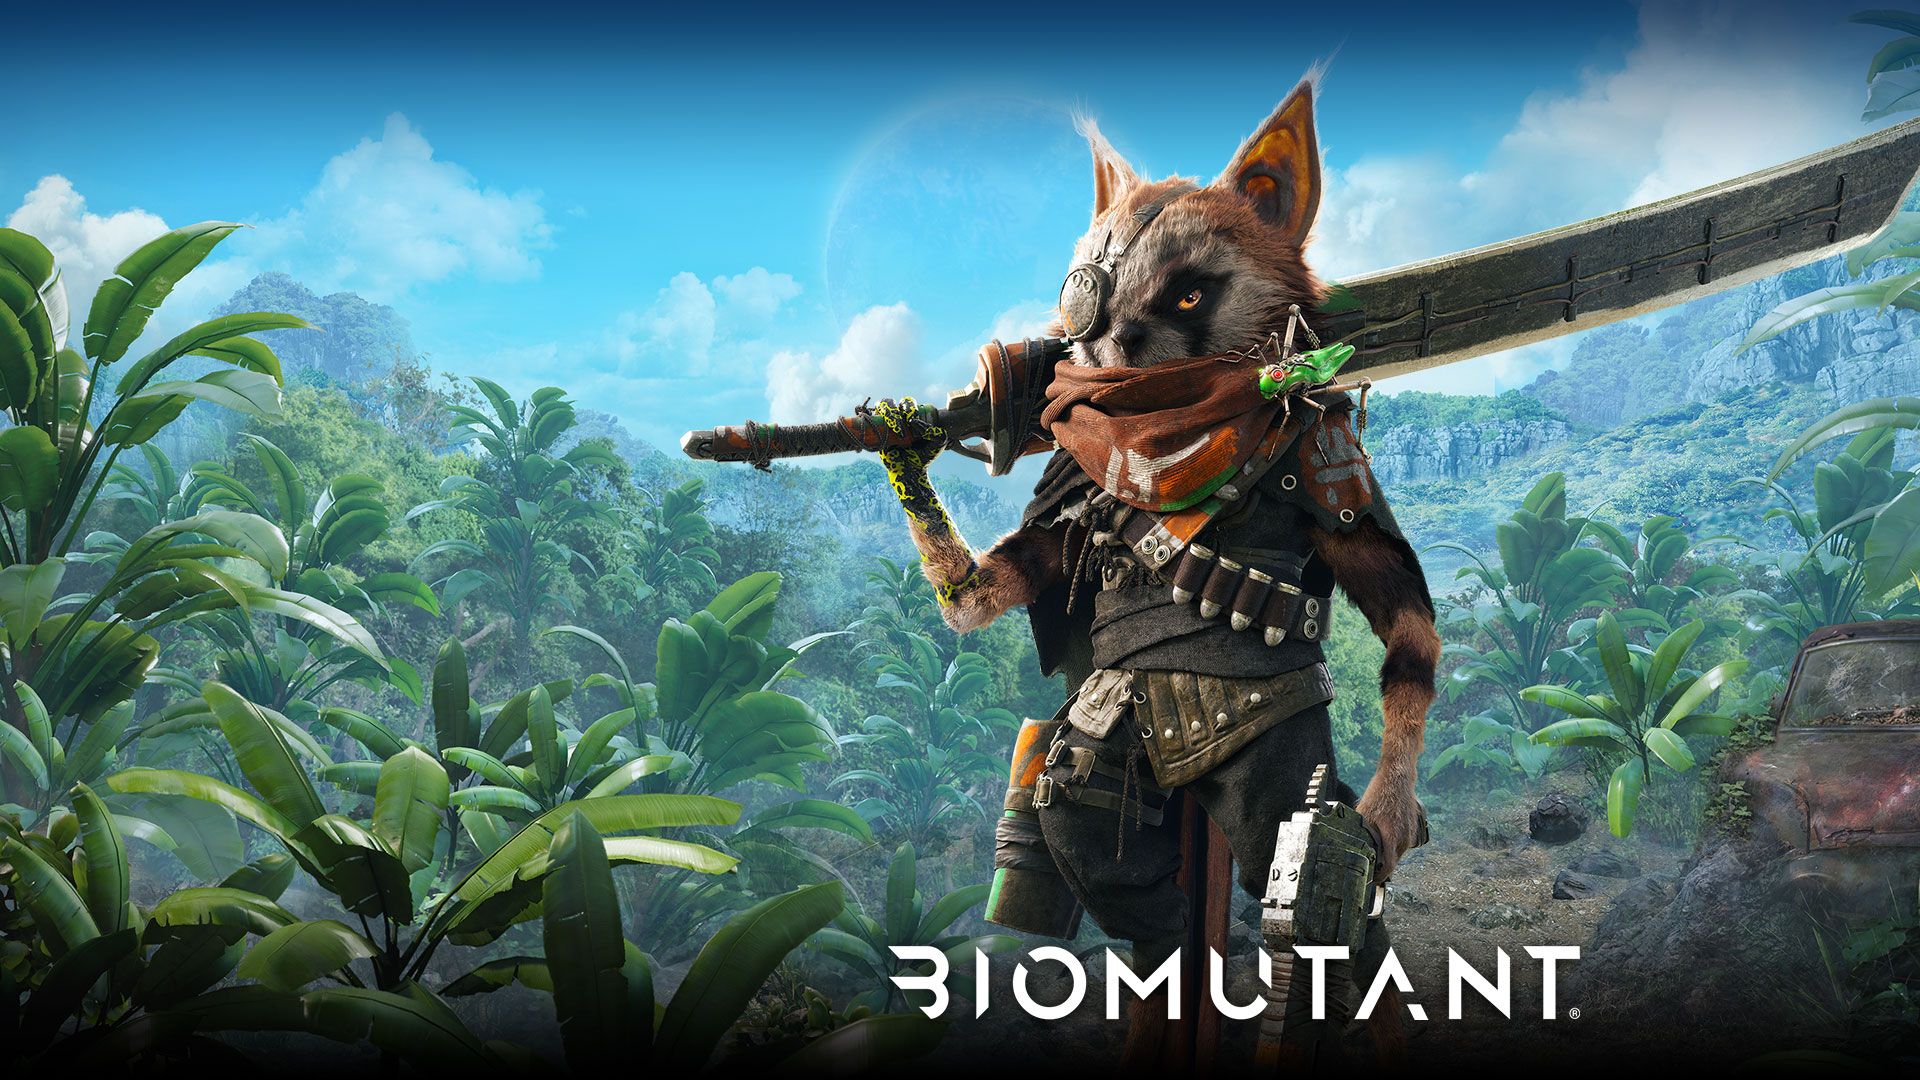 Biomutant, A mutated raccoon creature stands in a jungle with a large sword and gun.